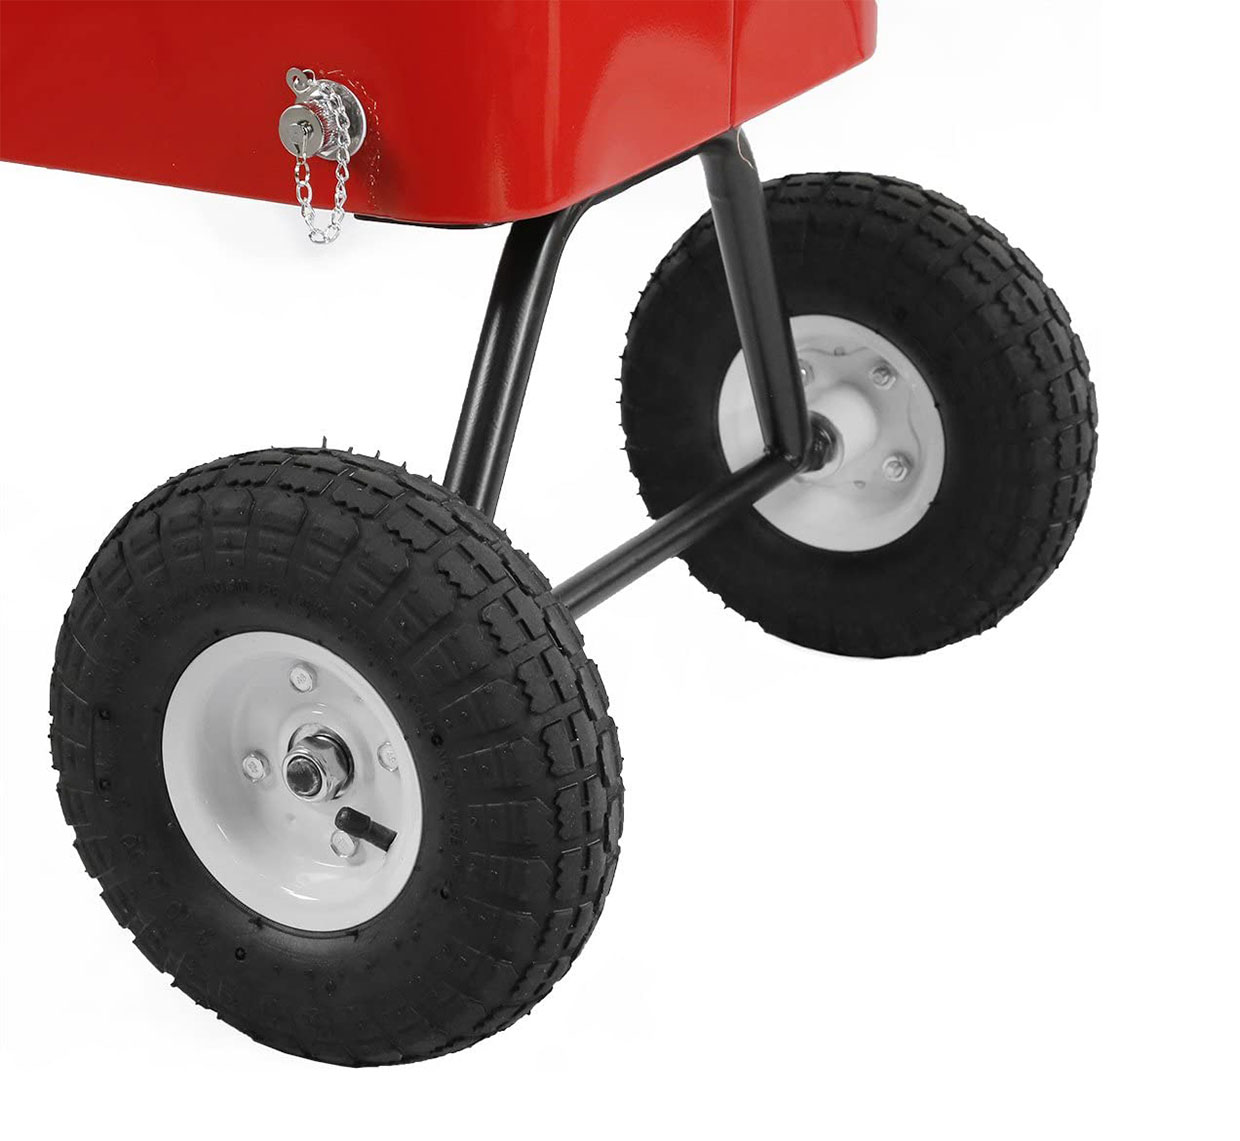 All-terrain Cooler Wagon